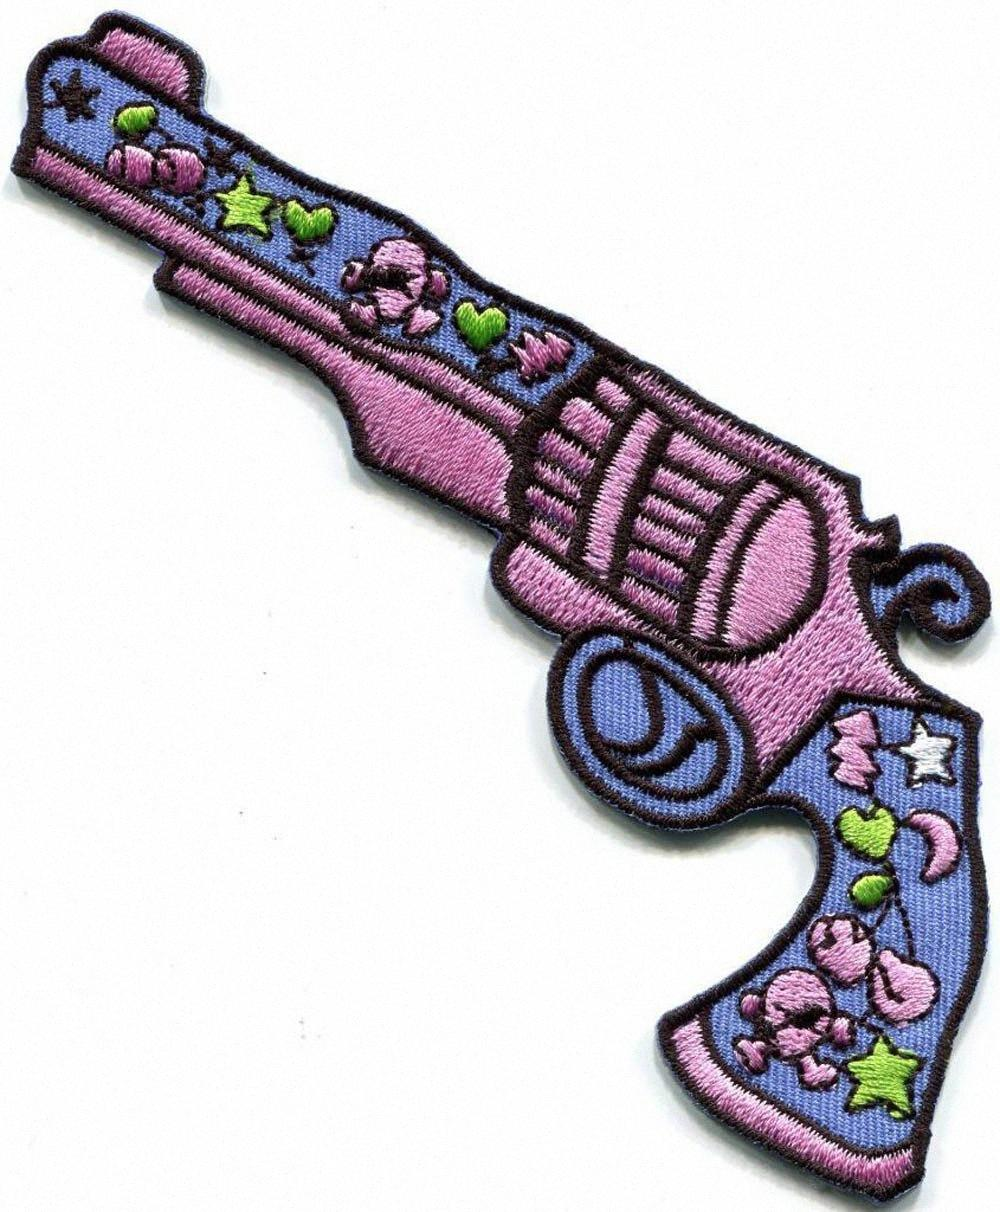 Free Shipping 100% embroidery stitches Love Gun flower power hippie embroidered applique iron-on patch new - T170528 qqbh#